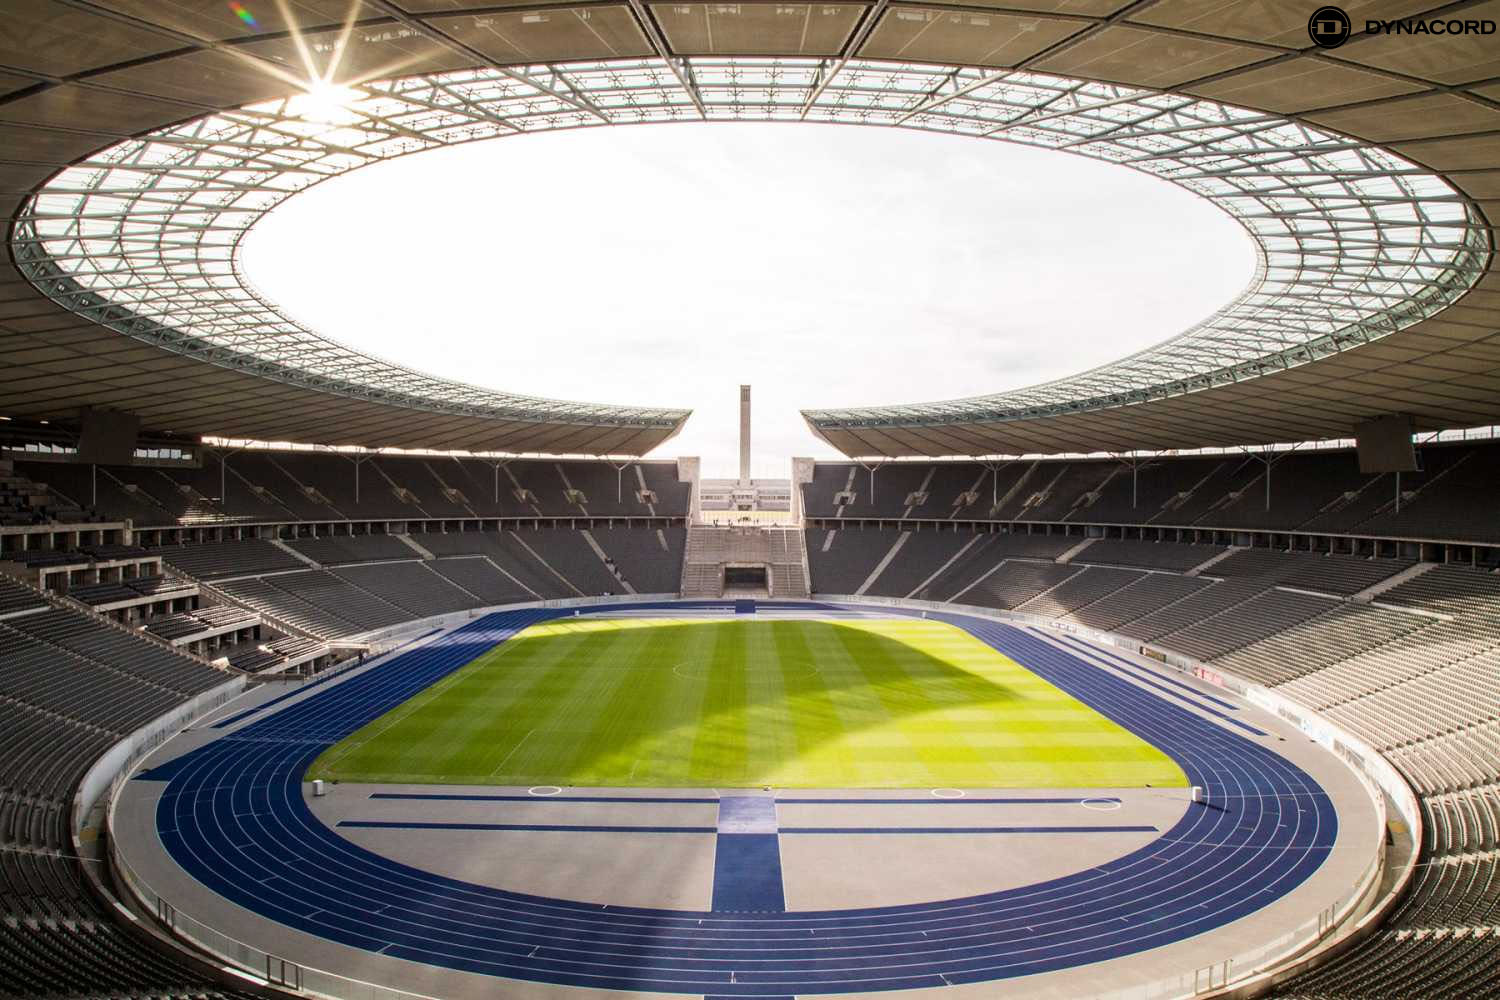 Dynacord brings power to Berlin Olympiastadion